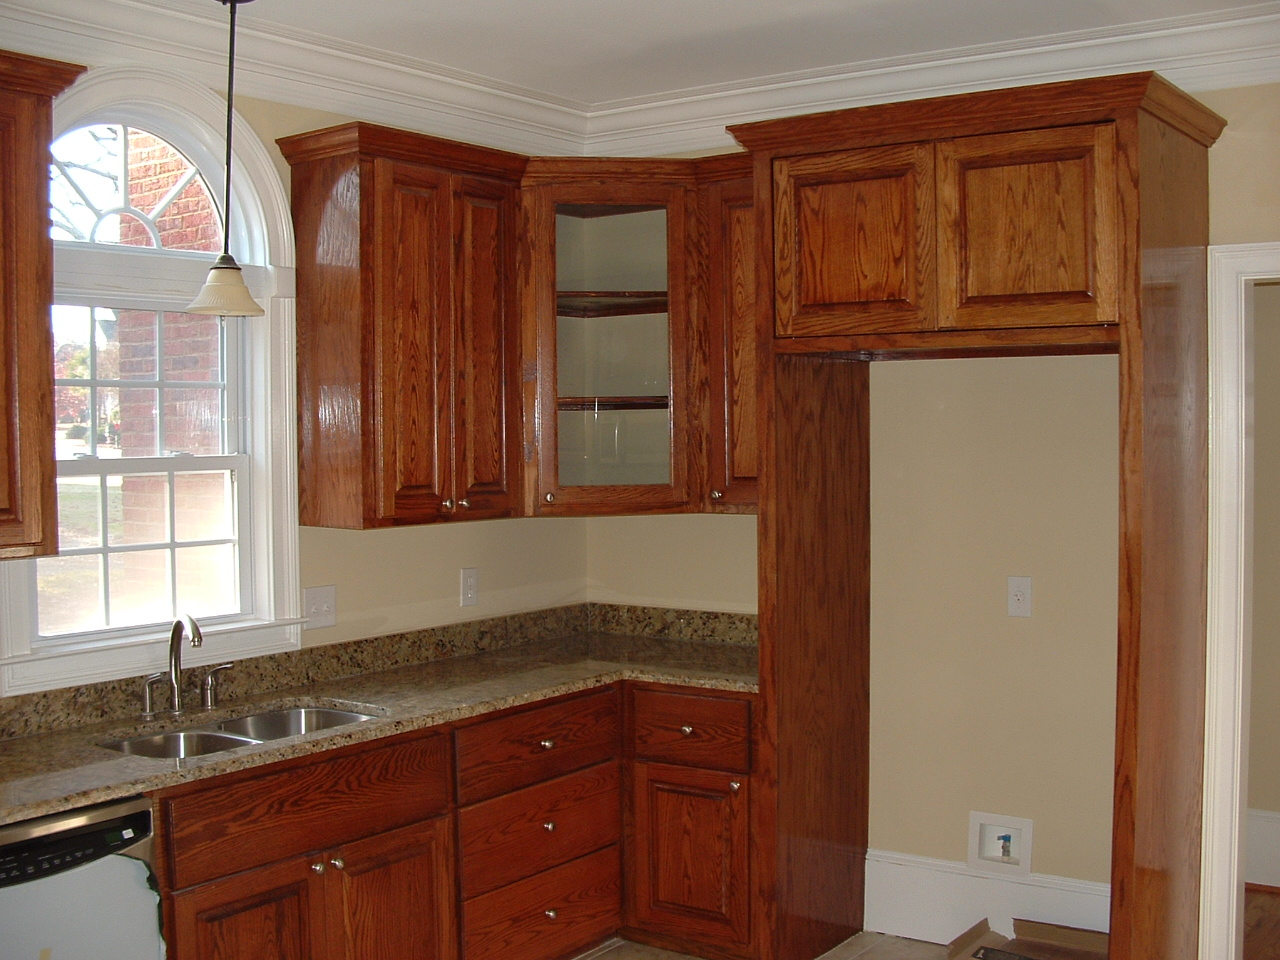 Kitchen Cupboard Doors Stained Kitchen Cabinets With Pocket Doors Over Fridge Closed Corner Cabinet White Windows Steel Tap